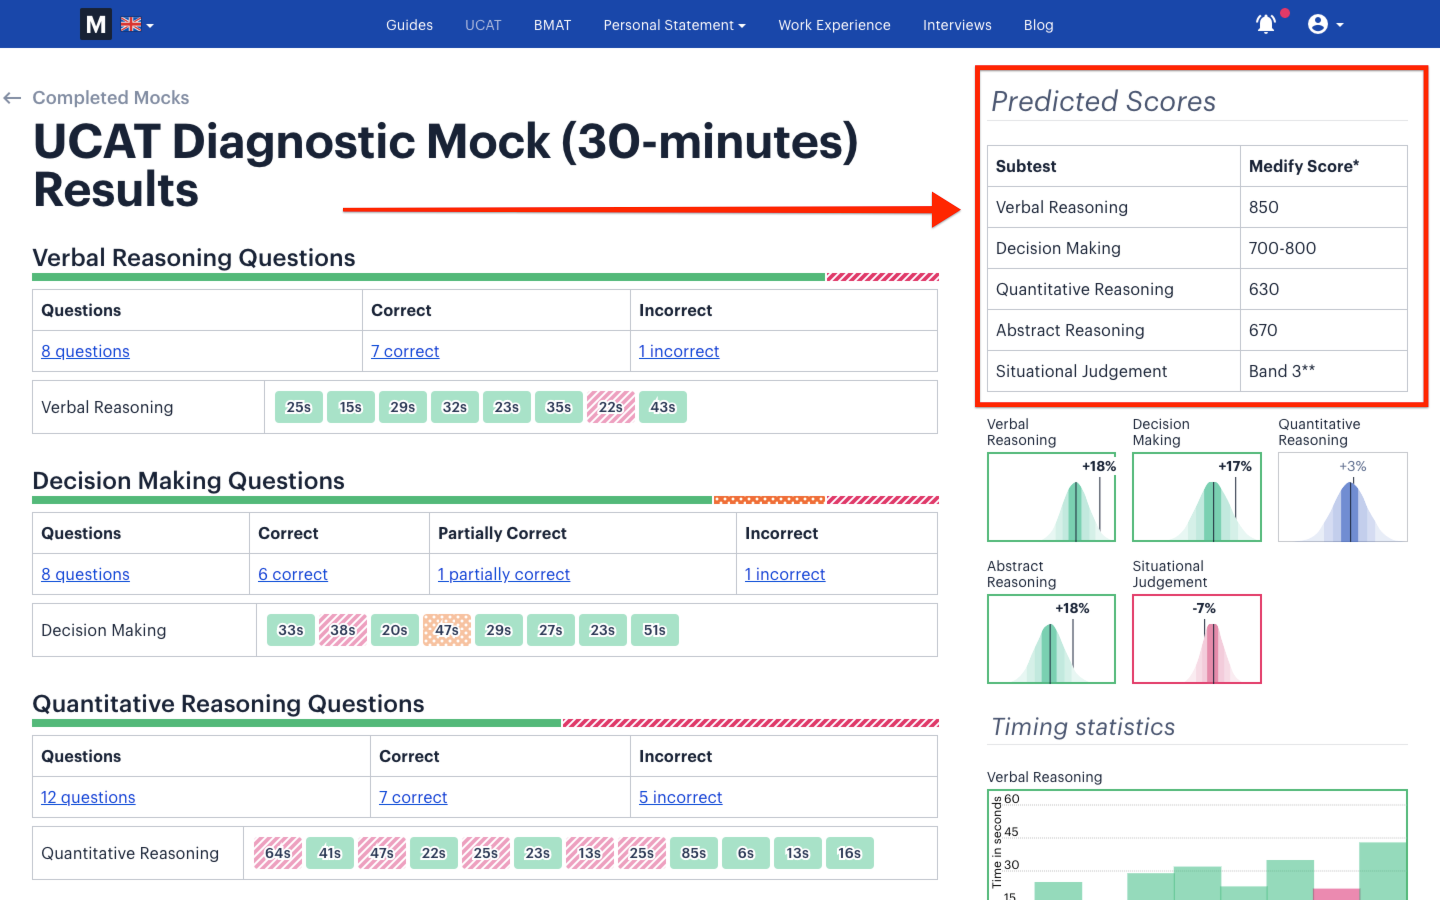 A screenshot showing results of a Medify UCAT diagnostic test, with a red arrow pointing towards the predicted scores.